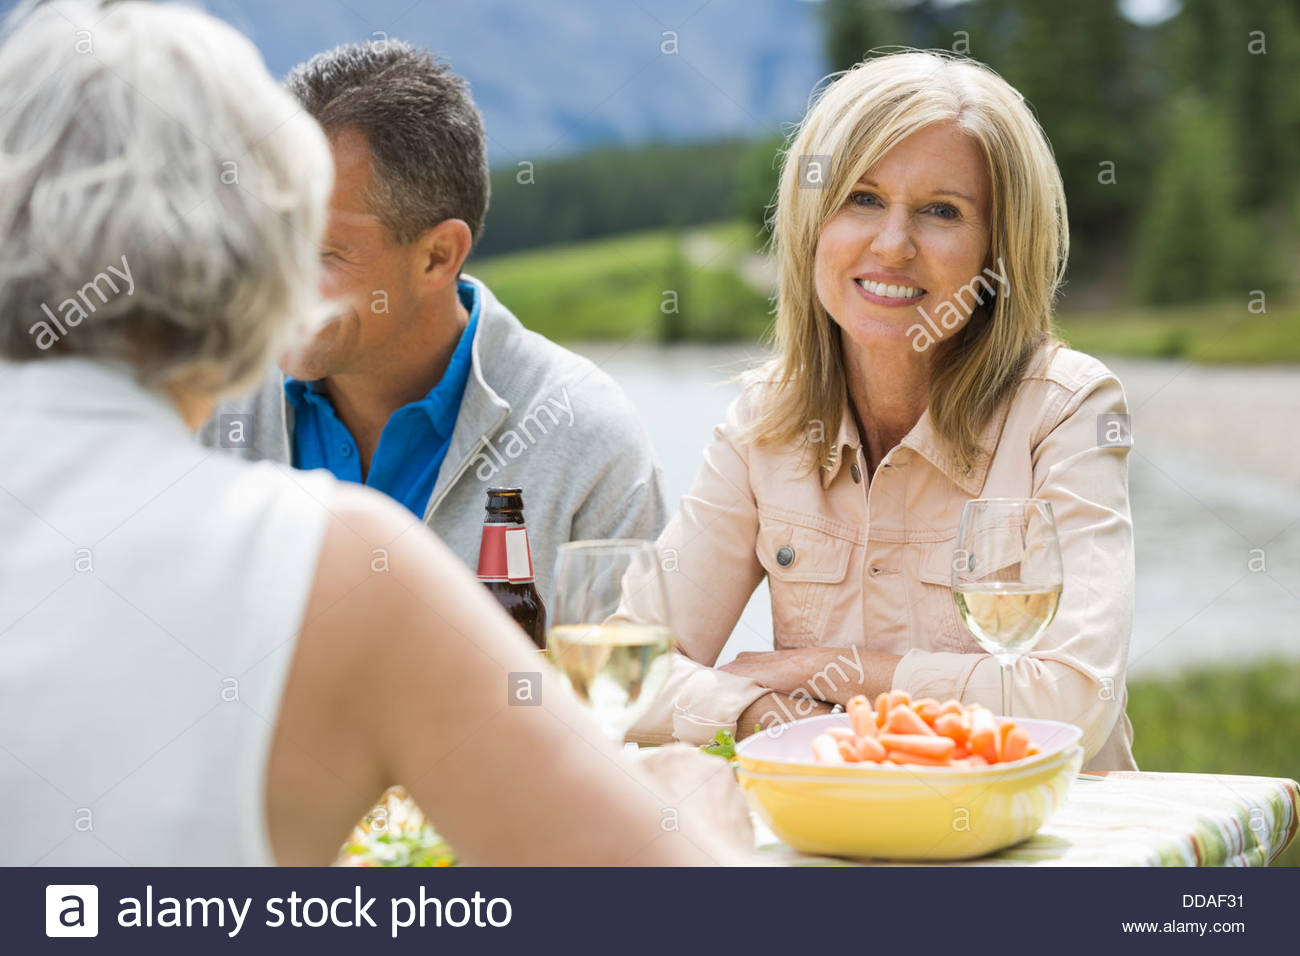 mature woman enjoying an outdoor picnic with friends stock photo